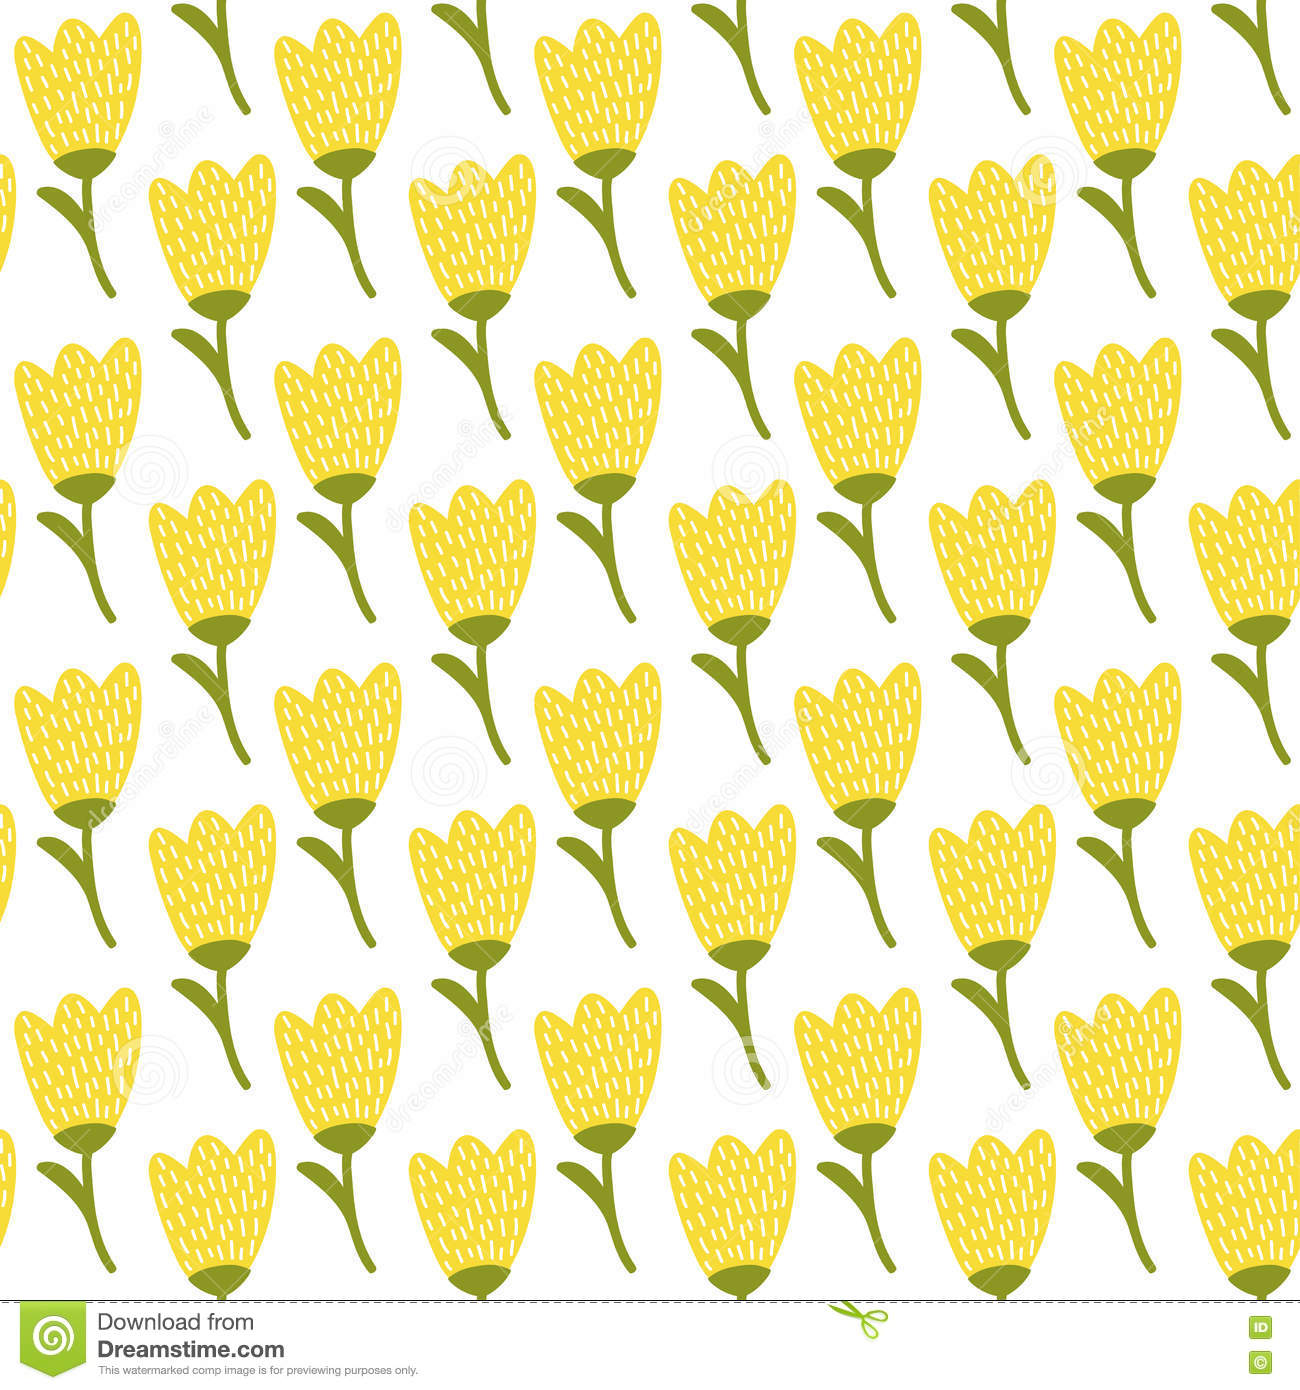 Simple flower pattern background - photo#24